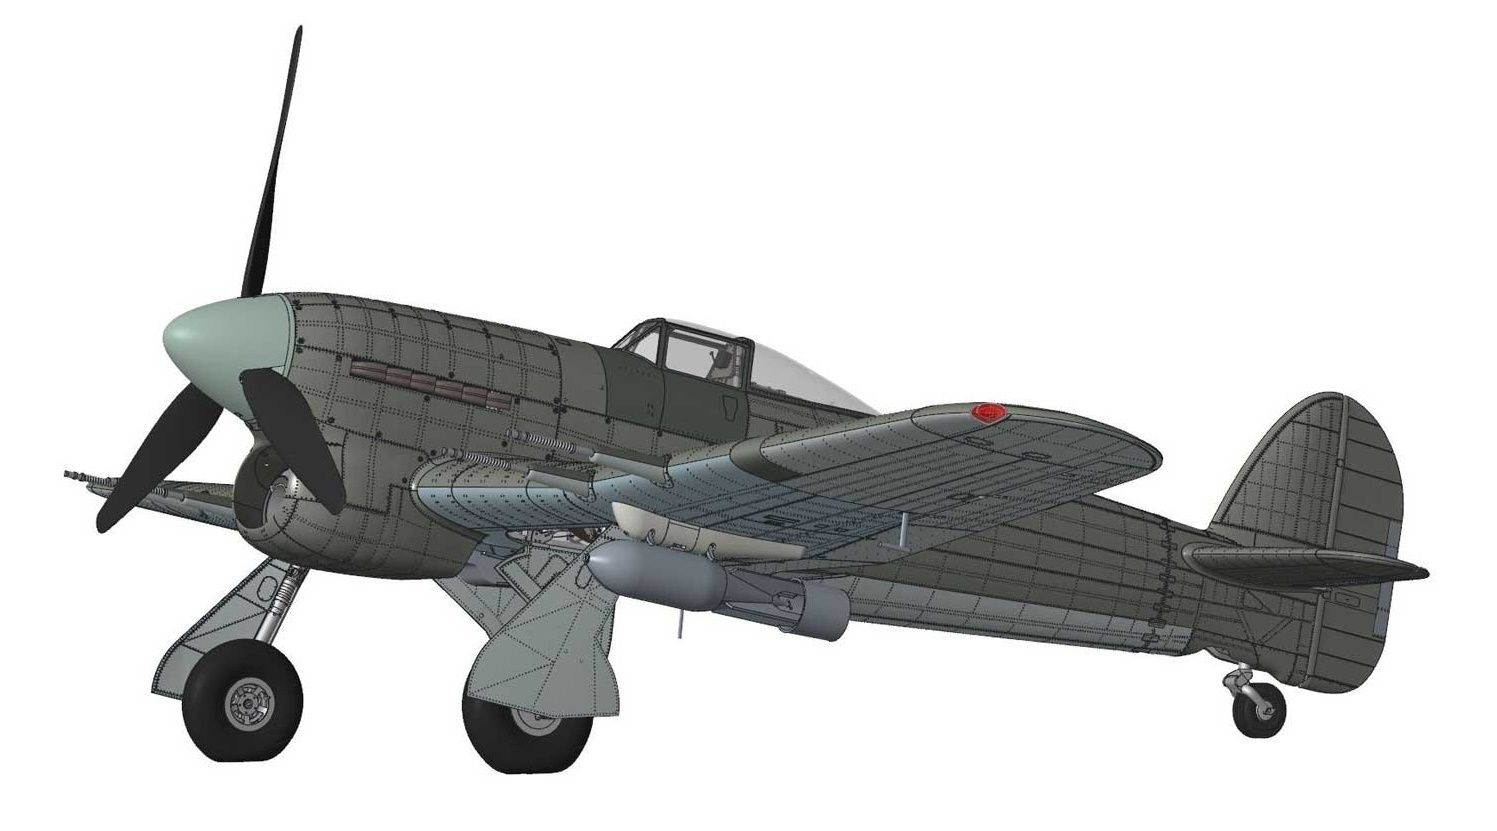 Airfix Hawker Typhoon Mk.IB Car Door 1:24 Model Kit image